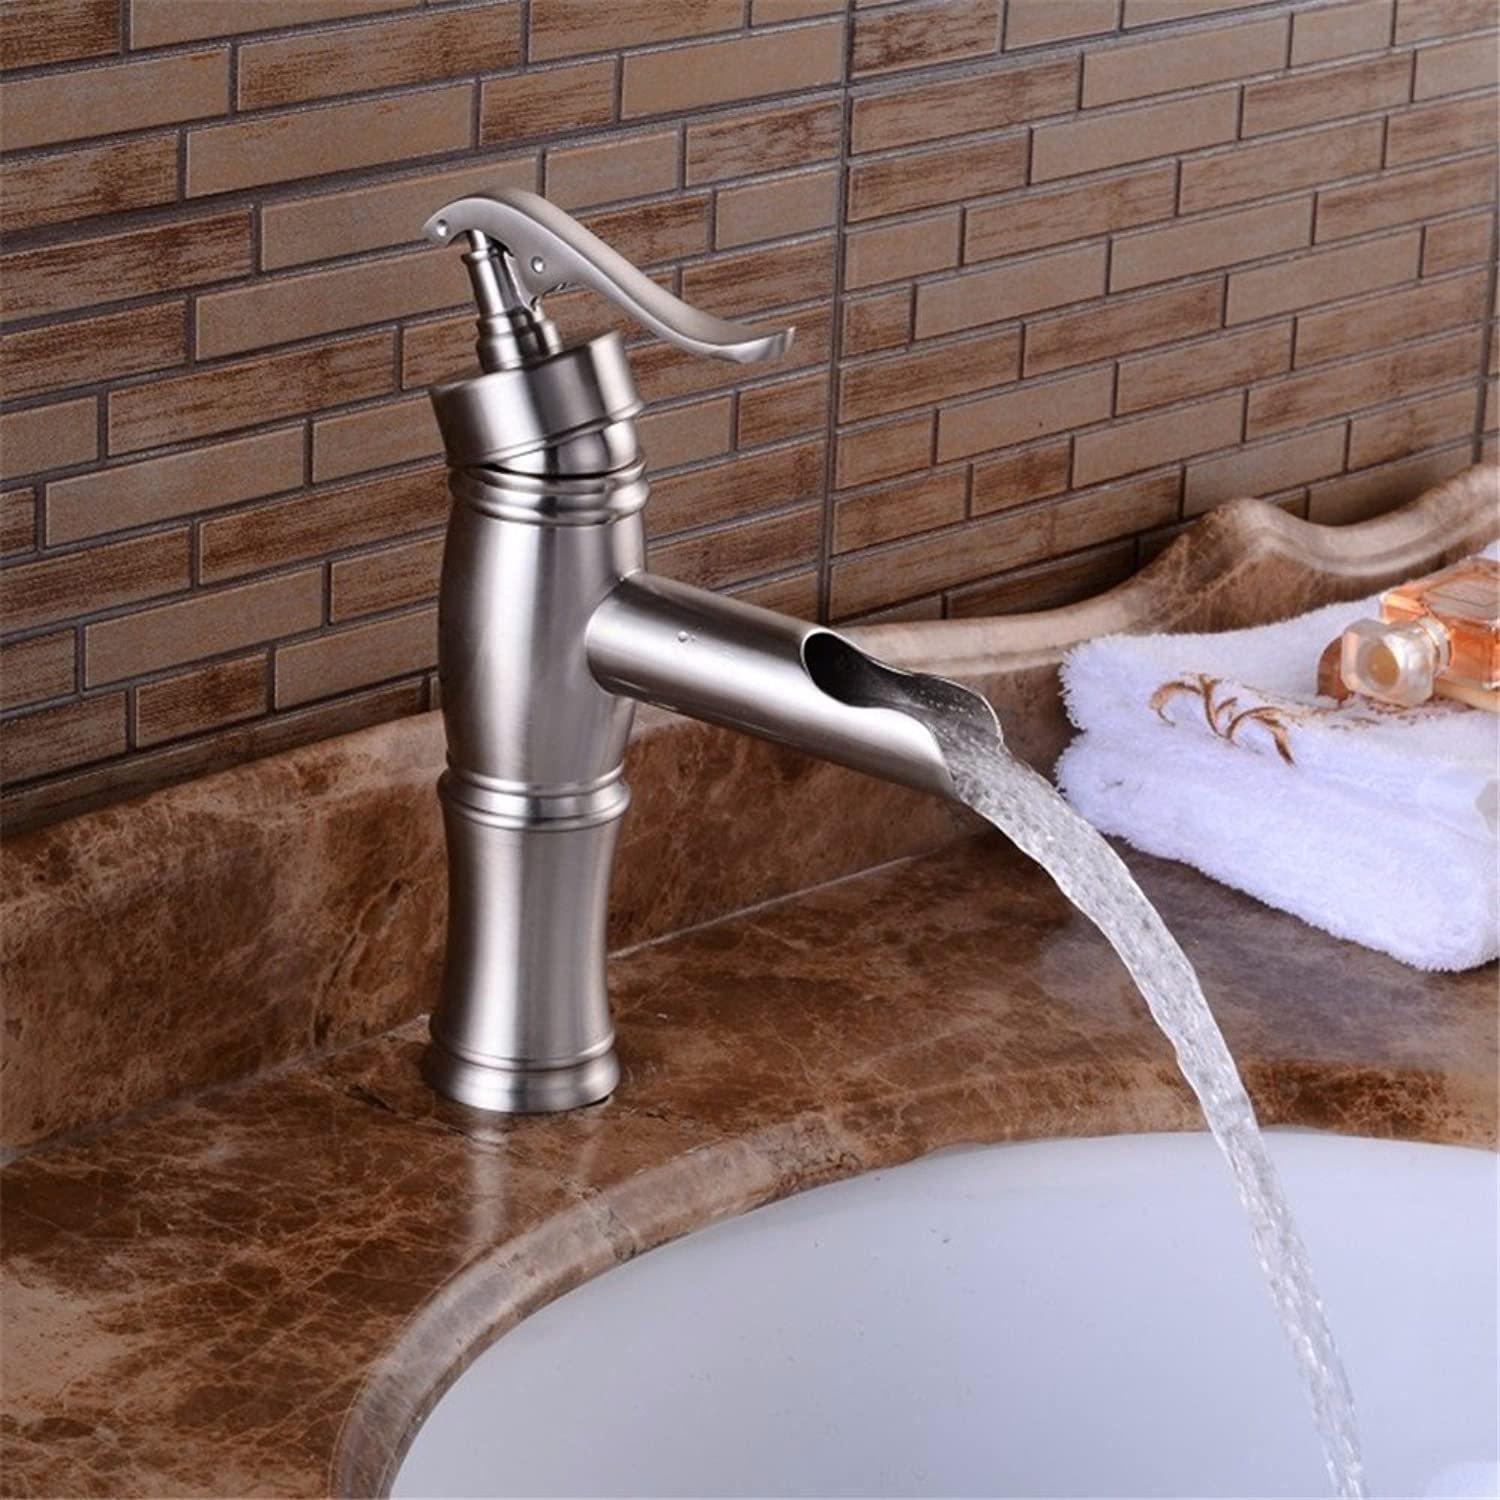 Bijjaladeva Antique Bathroom Sink Vessel Faucet Basin Mixer Tap The creative faucet open wells to tap the full copper brushed hot and cold basin mixer